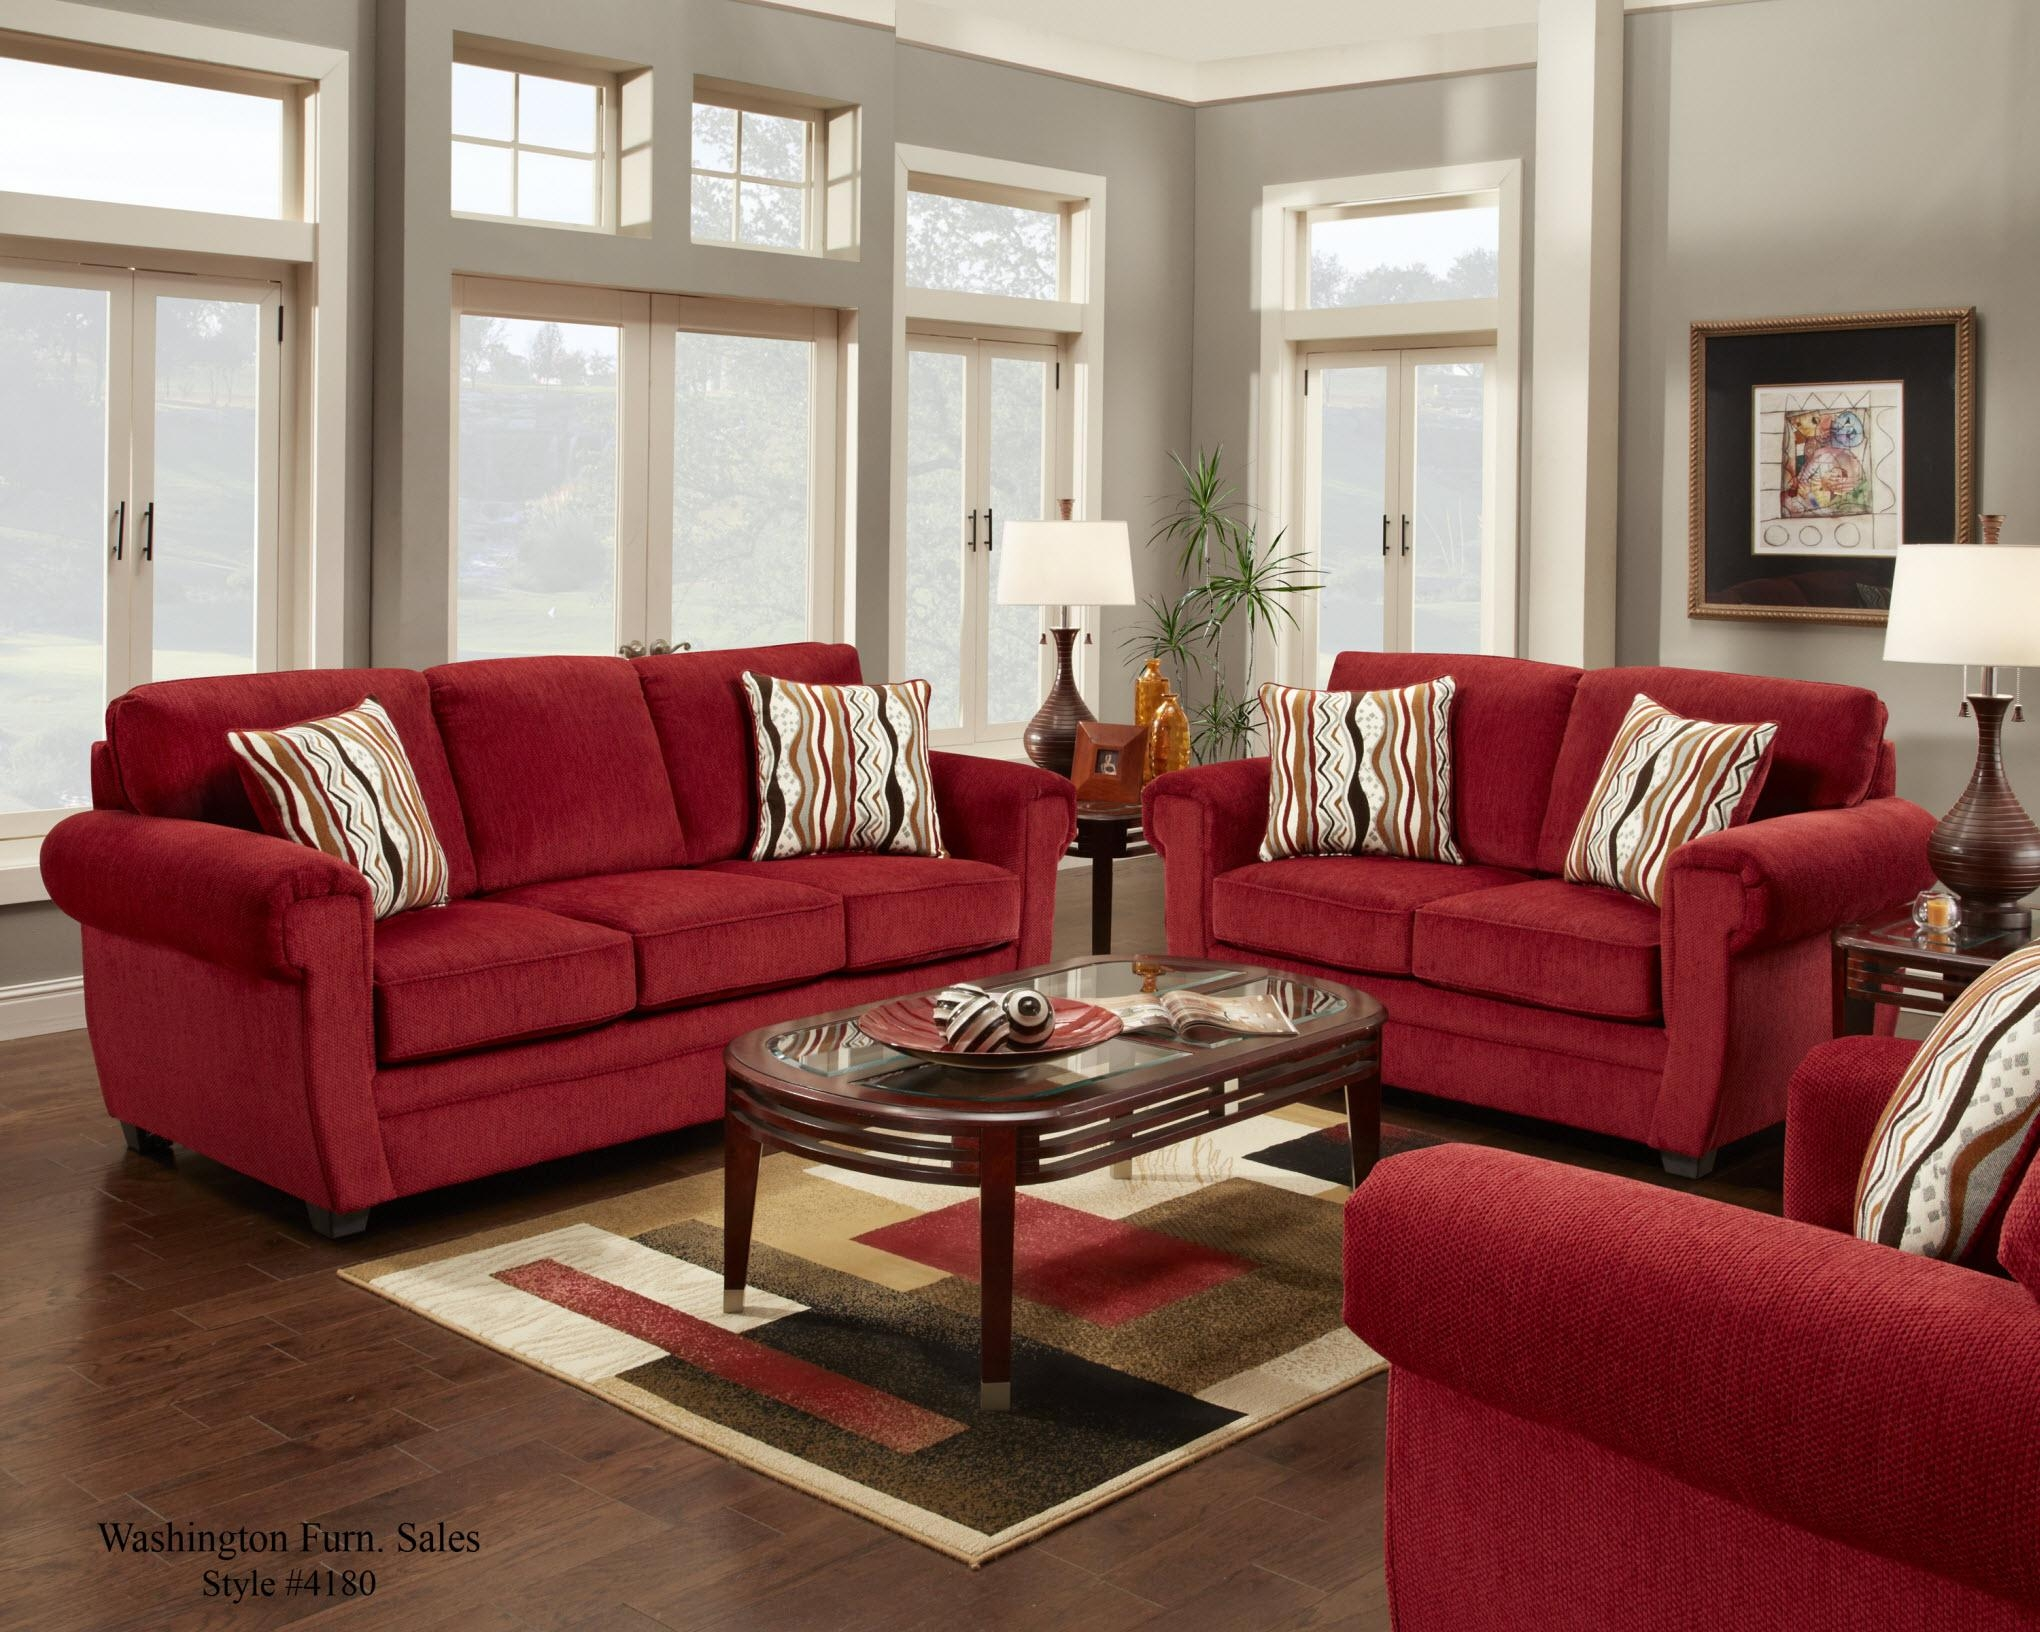 Sofas Center : Red Sofa Sets Sale Modern Fabric Set Arrangements Throughout Black And Red Sofa Sets (Image 19 of 20)